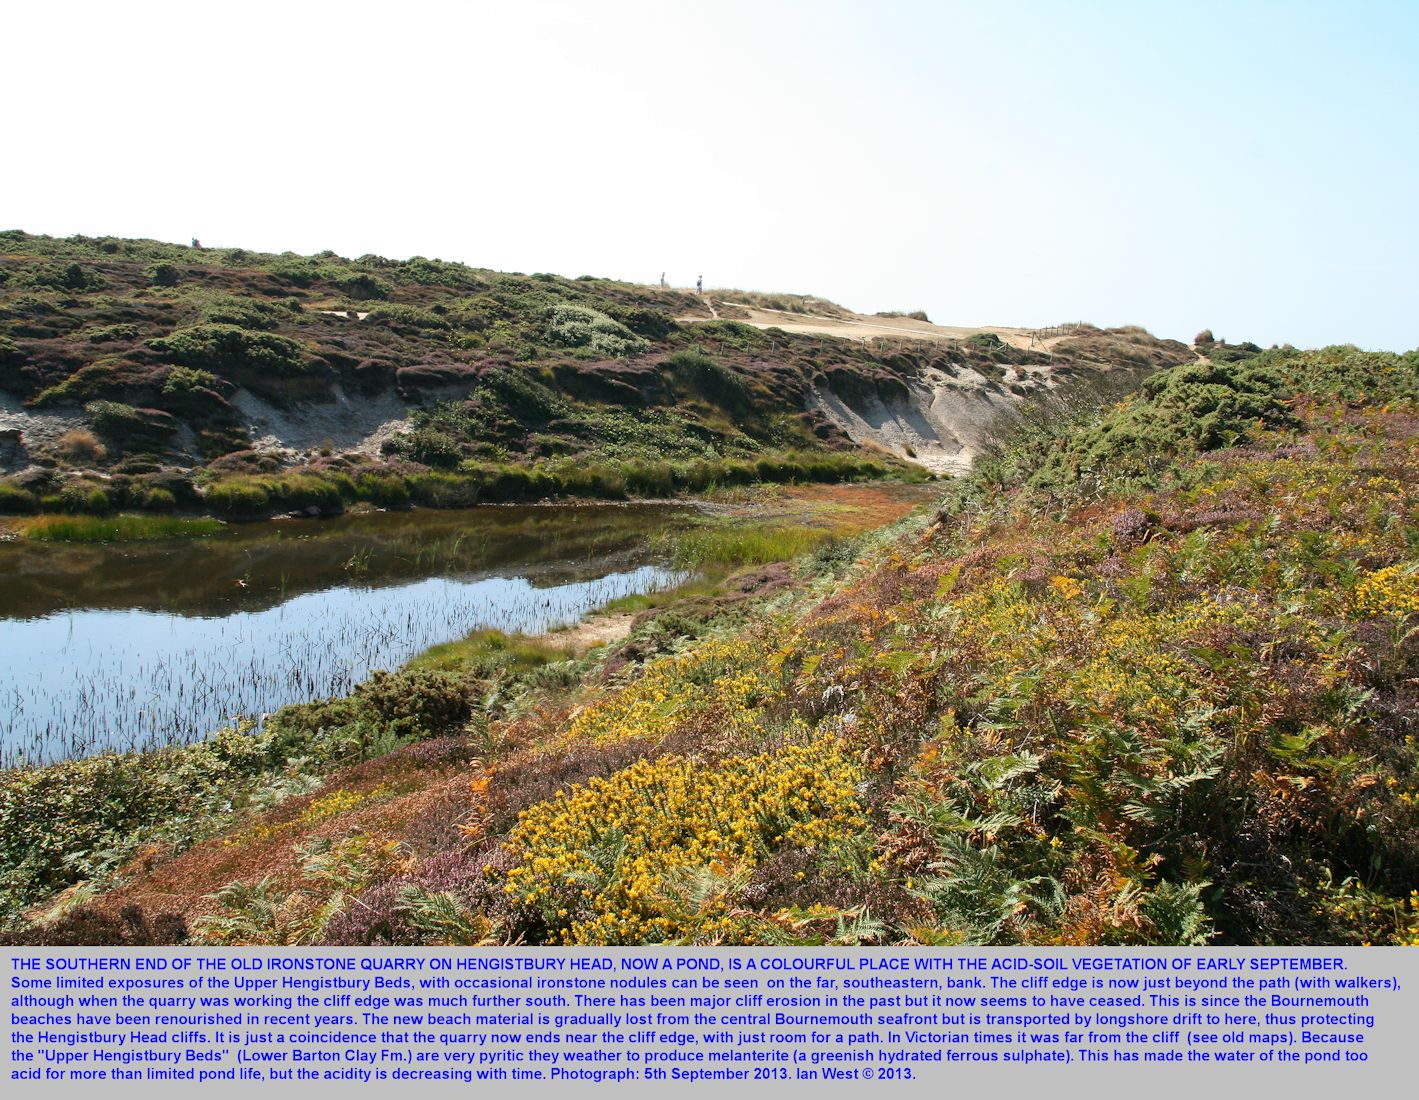 The southern part of the quarry pond in the centre of Hengistbury Head, Bournemouth, Dorset, seen with colourful vegetation in September 2013